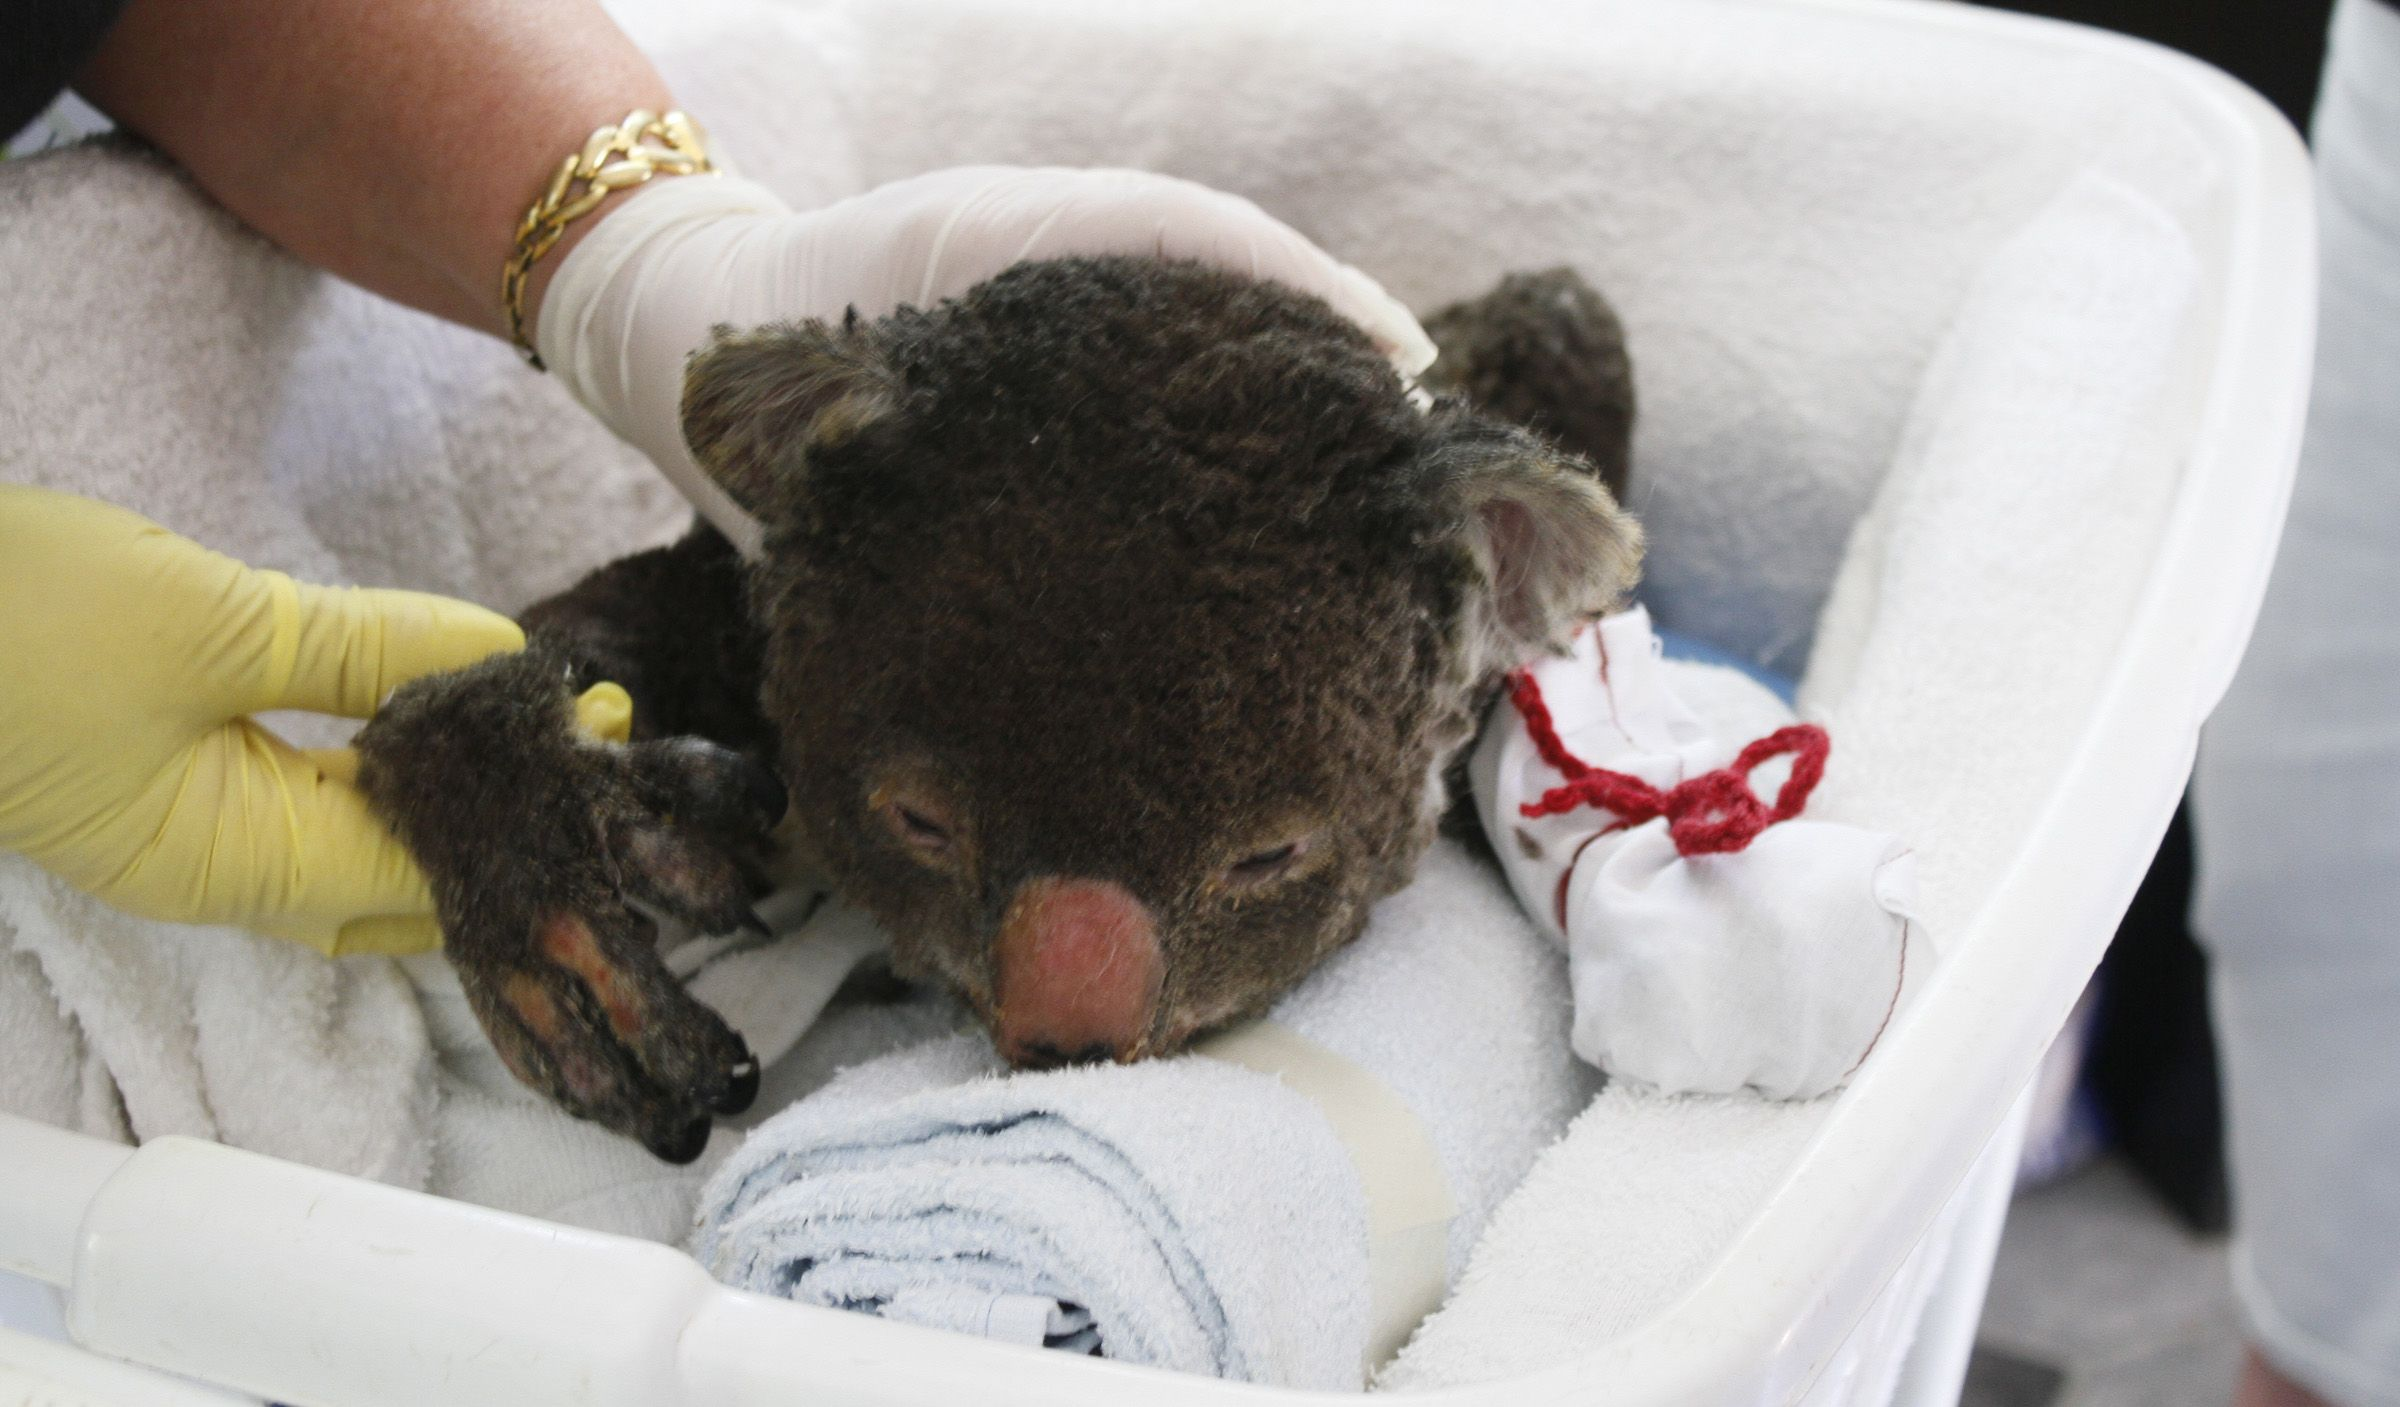 Campaign To Knit Mittens For Injured Koalas Successful Adorable